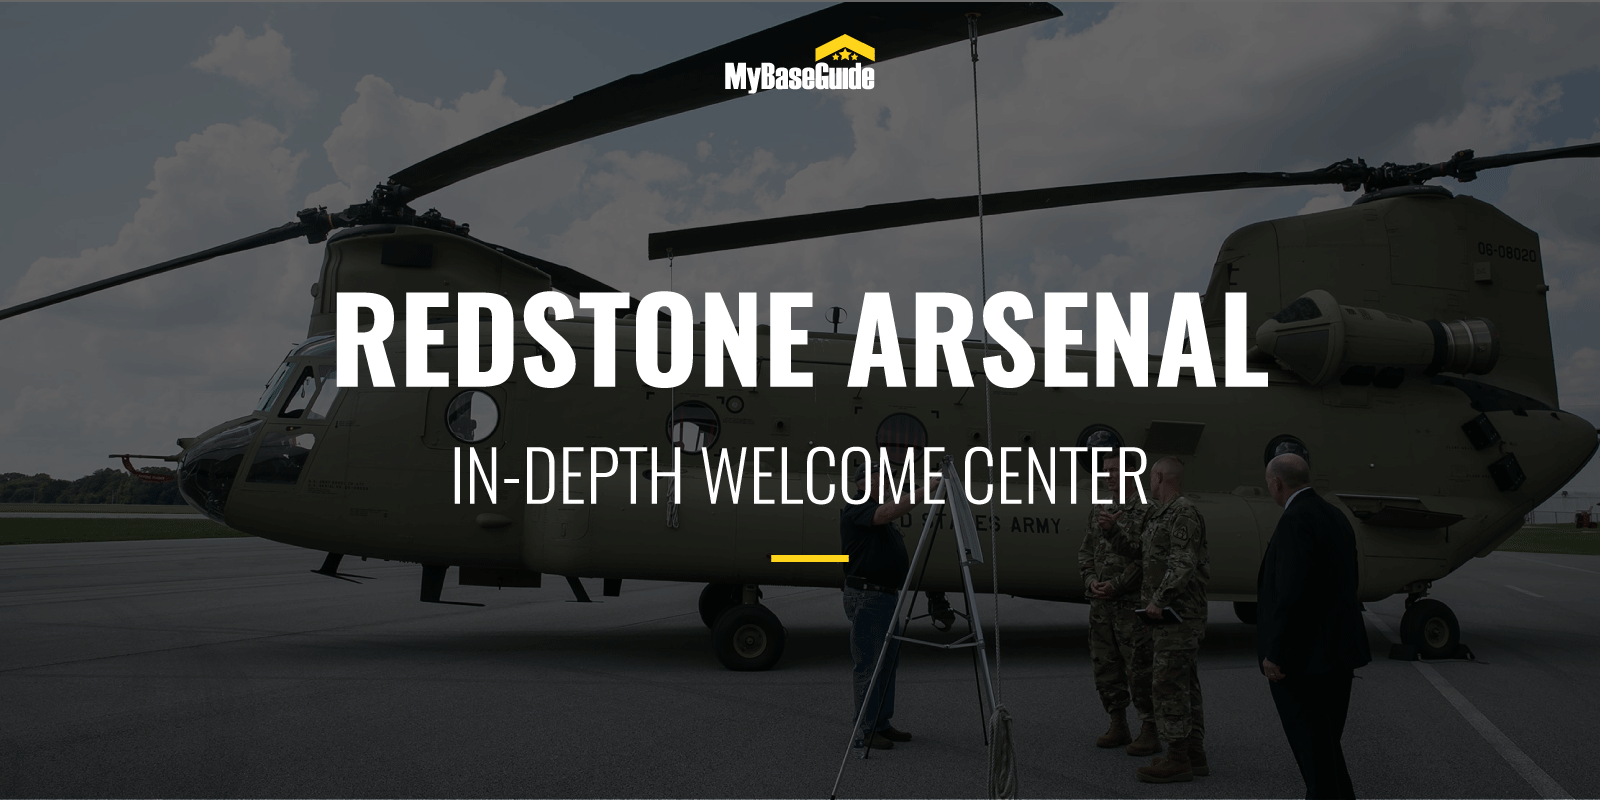 Redstone Arsenal: In-Depth Welcome Center